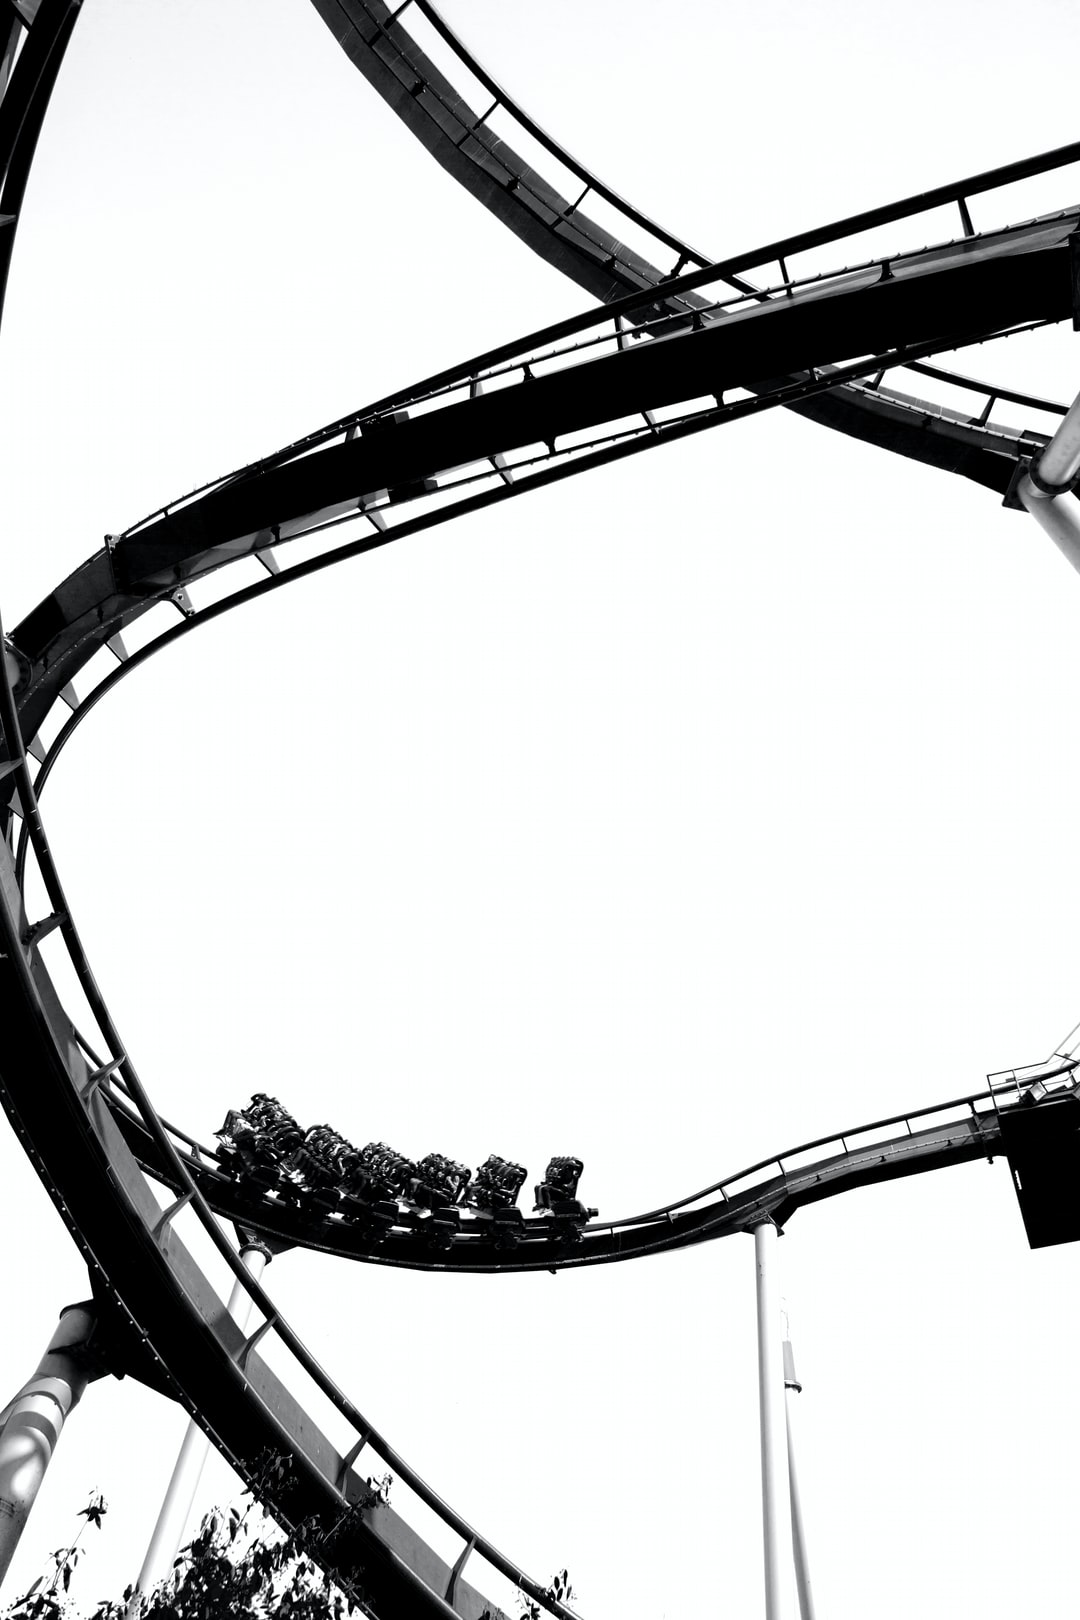 Rollercoaster in Copenhagen, with strong black and white effect